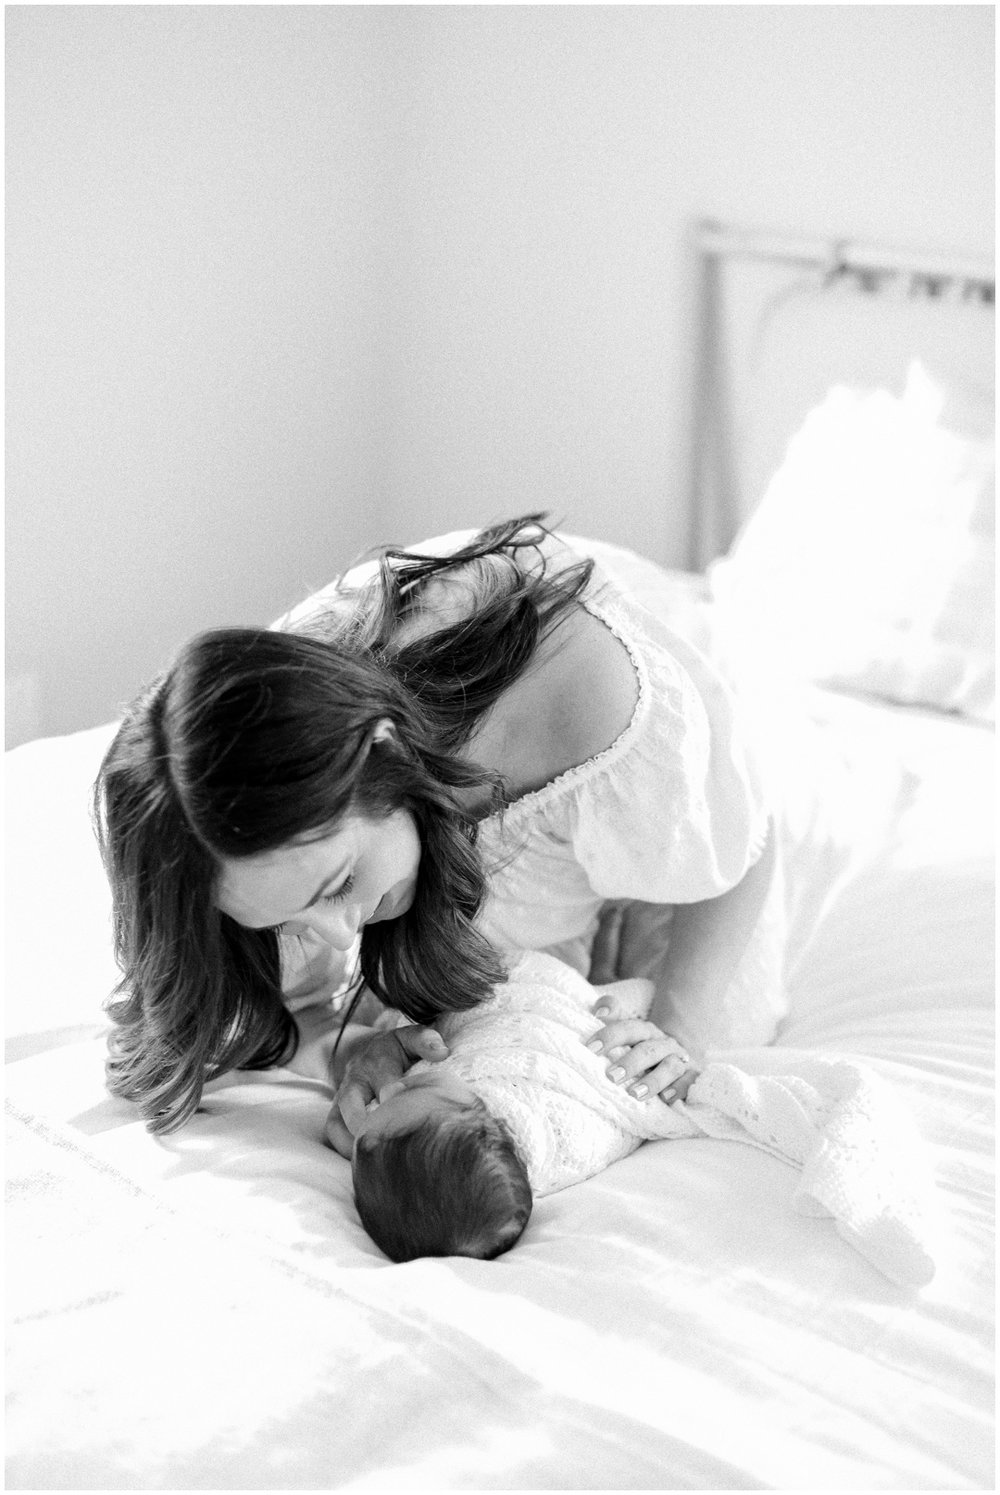 Newport_Beach_Newborn_Photographer_Newport_Beach_Maternity_Photographer_Orange_County_Family_Photographer_Cori_Kleckner_Photography_Huntington_Beach_Photographer_Family_OC_Newborn_Danielle_Char_Baum_Family_3056.jpg